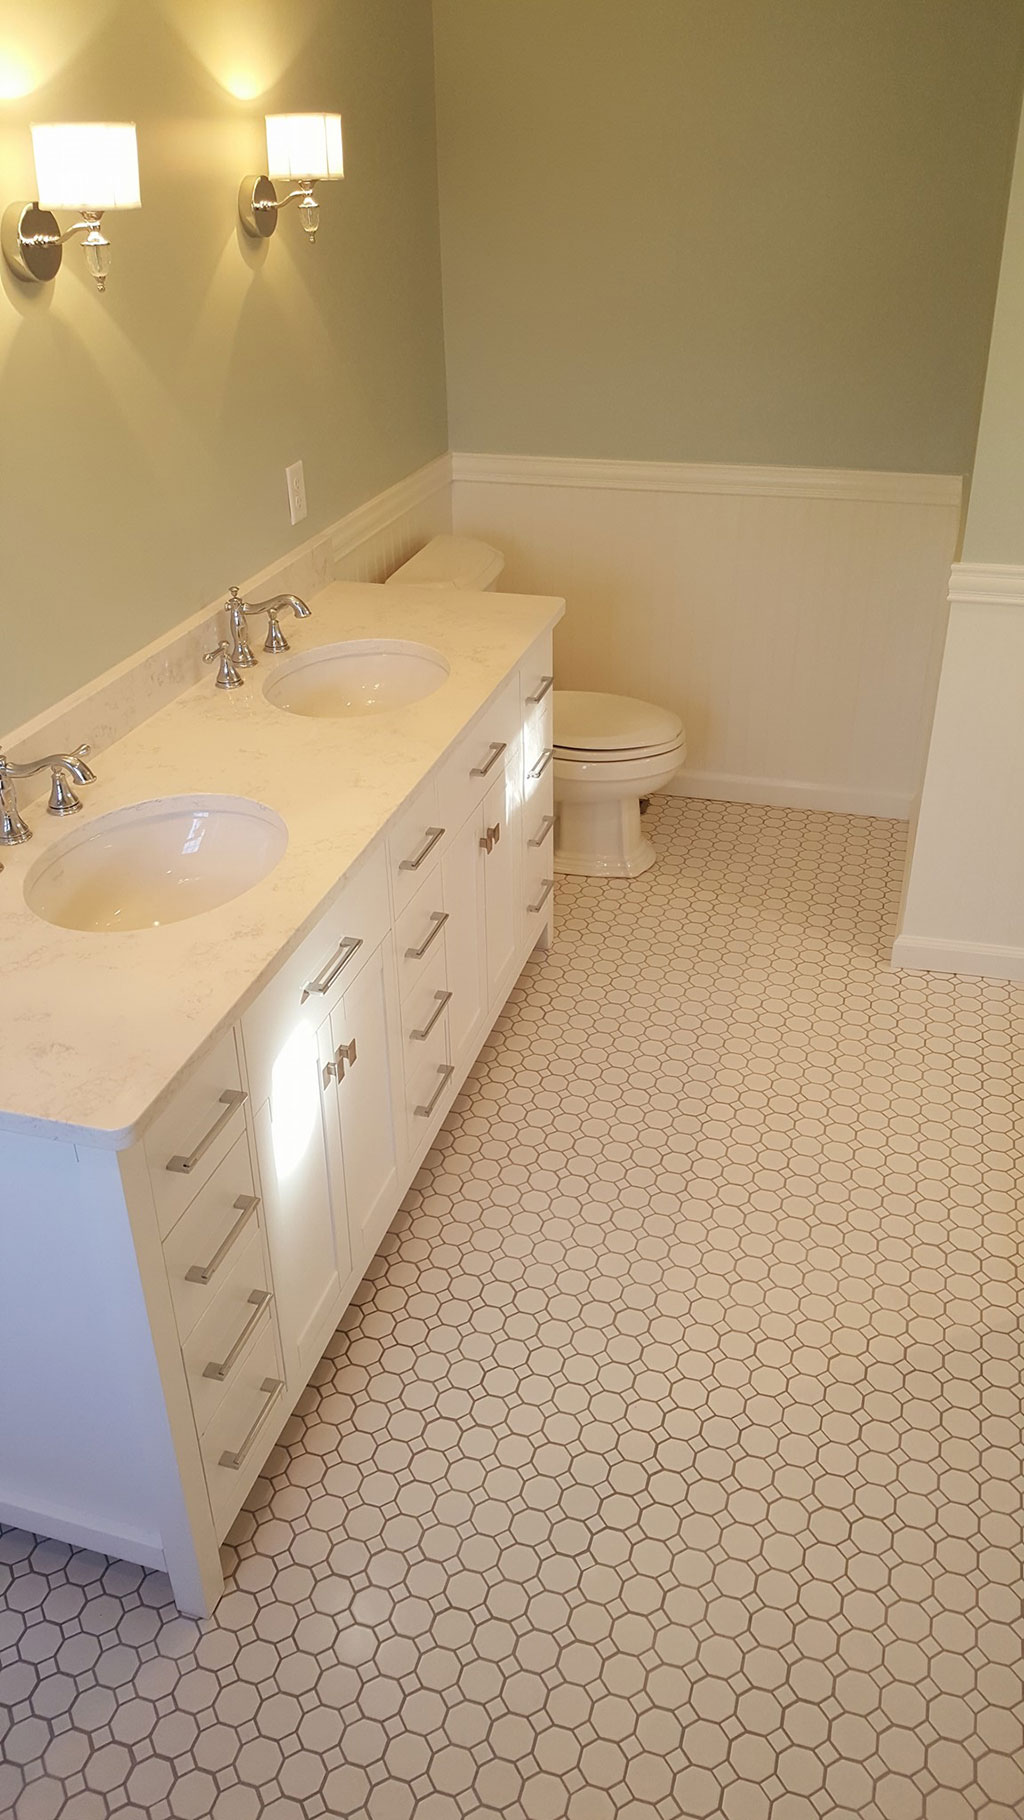 Tile Mosaic Marble Look Porcelain | Wyomissing